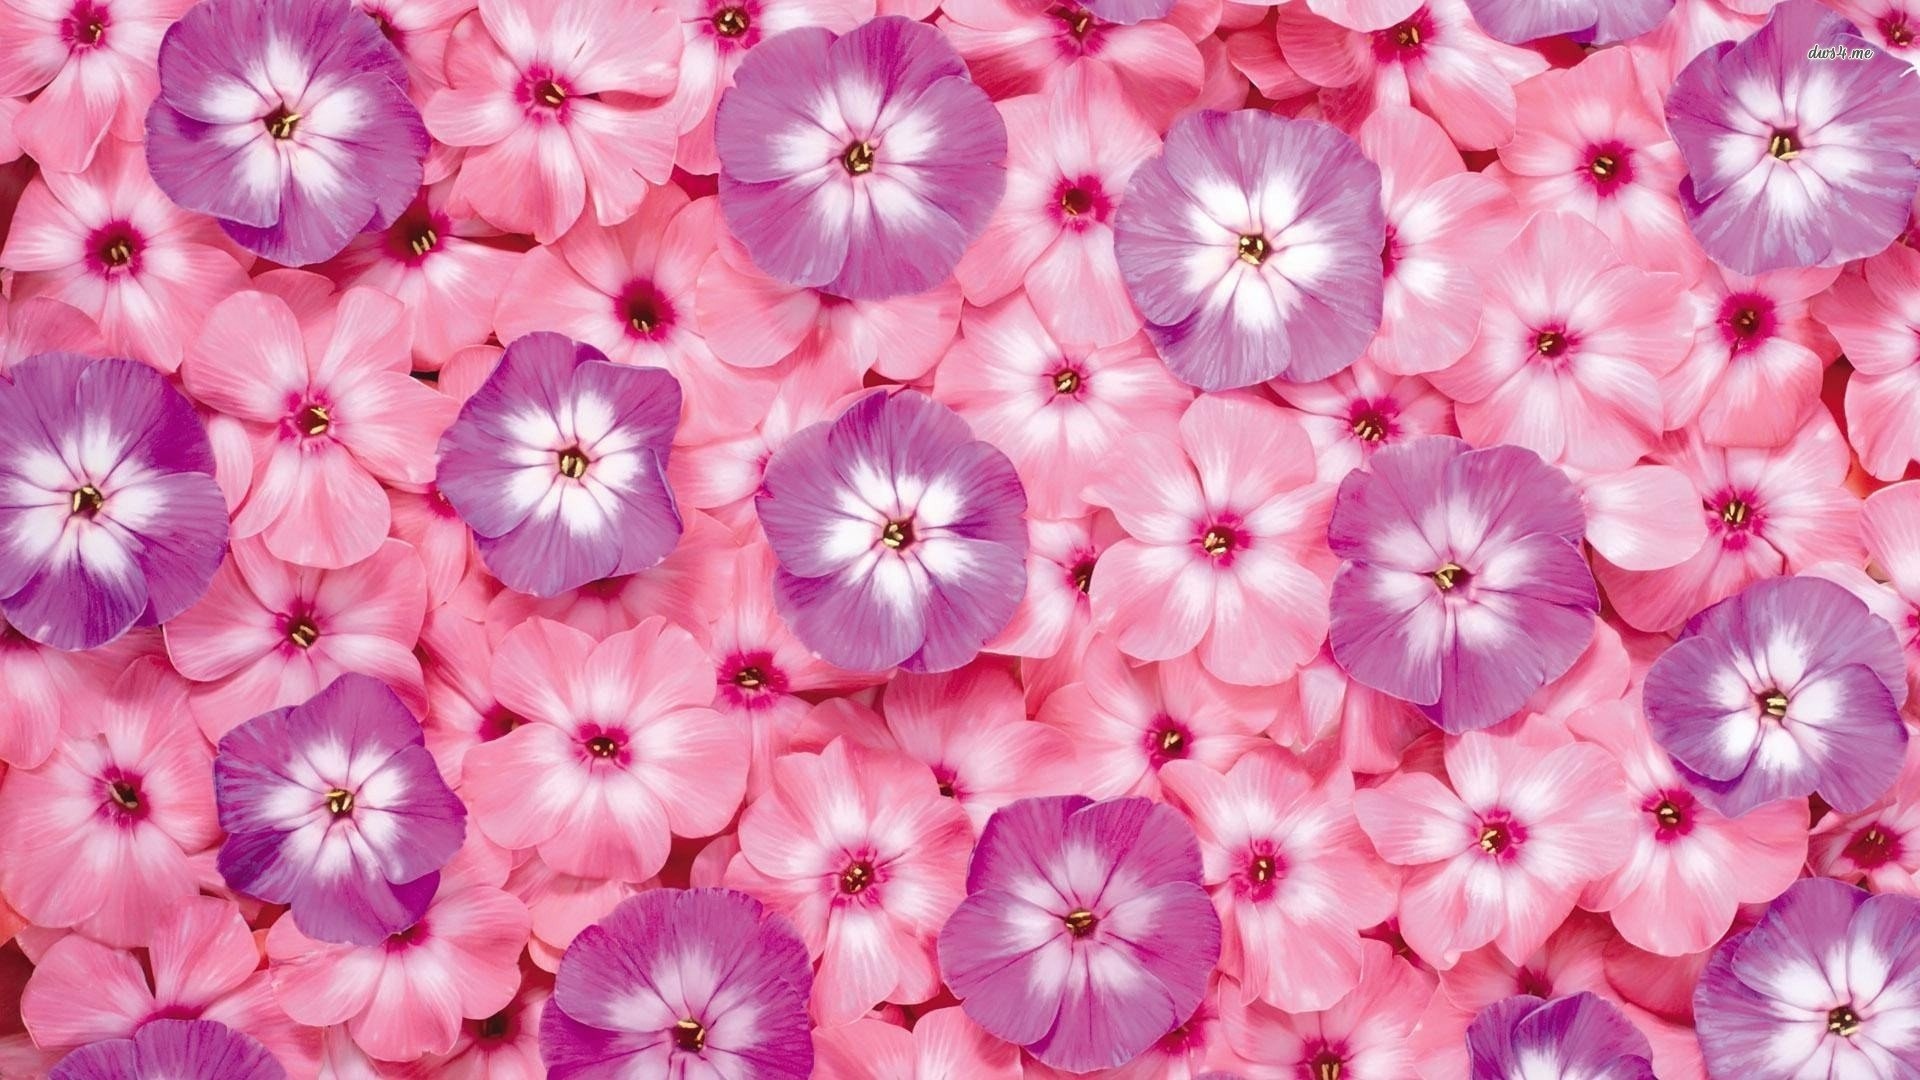 Small pink and purple flowers wallpaper 1280x800 Small pink and purple 1920x1080